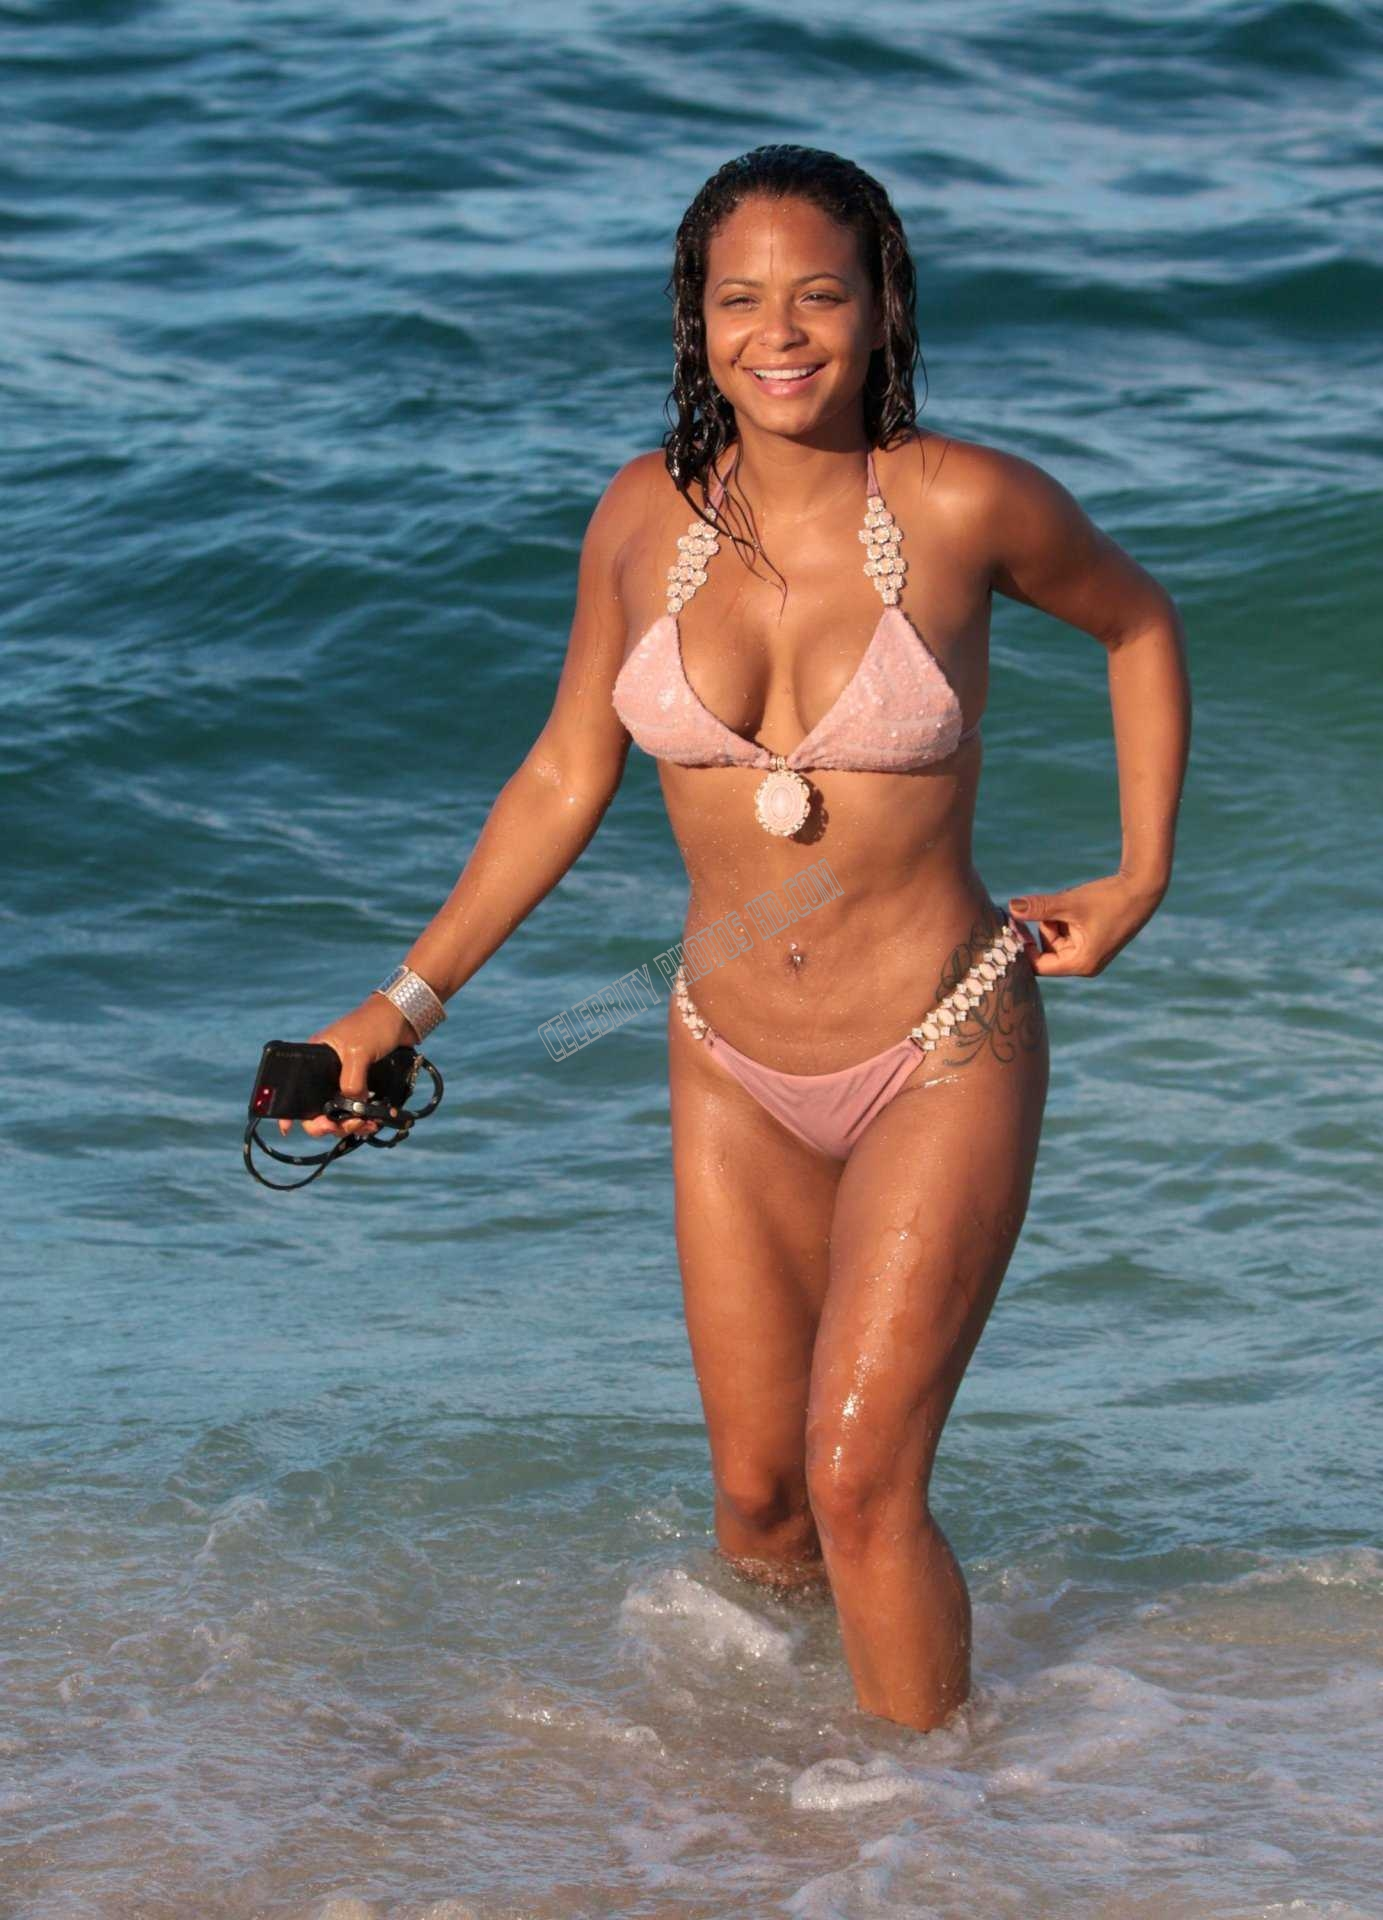 Christina Milian Bikini Hot Celebrity Photos (3)